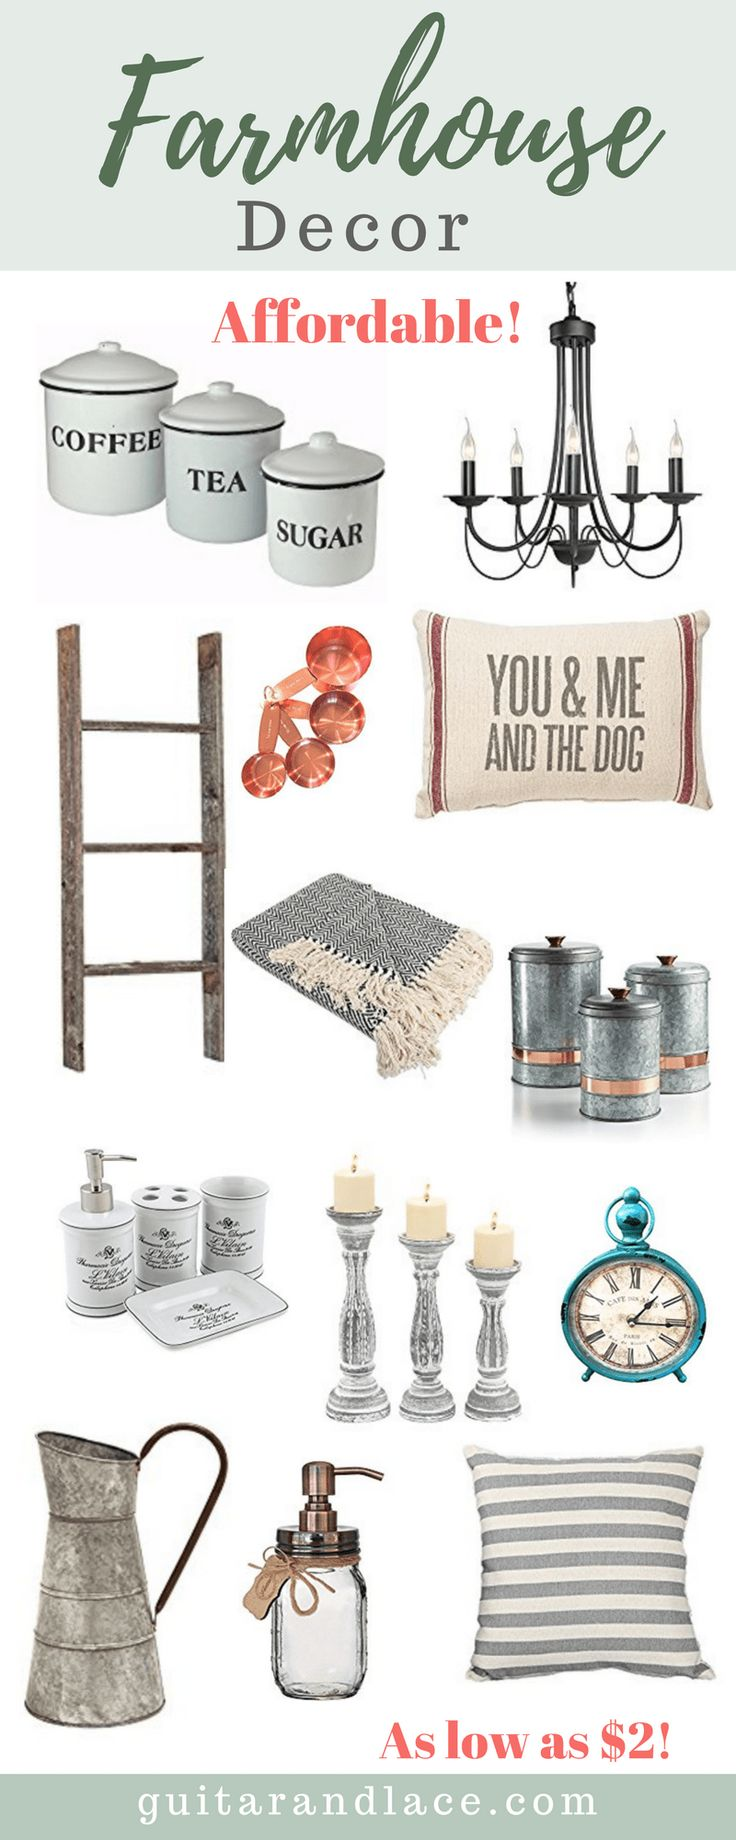 Farmhouse Decor, affordable, on a budget, budget friendly, all budgets, farmhouse kitchen, farmhouse